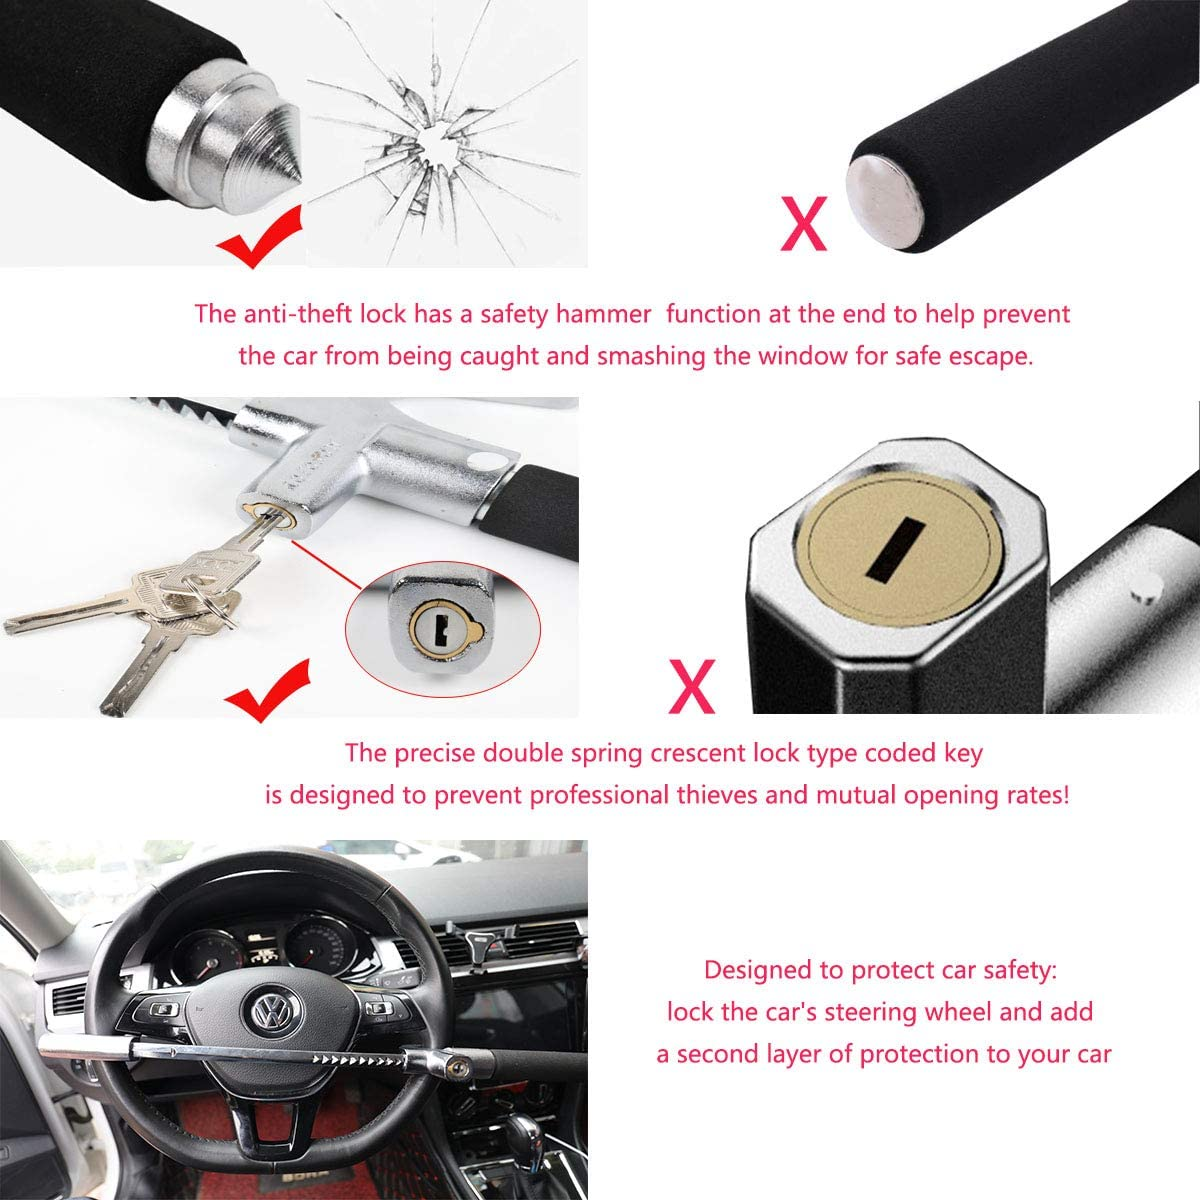 Yaegoo Car Steering Wheel Lock Van and SUV Universal Fit for Car Antitheft Locking Devices with Safety Hammer Light Truck